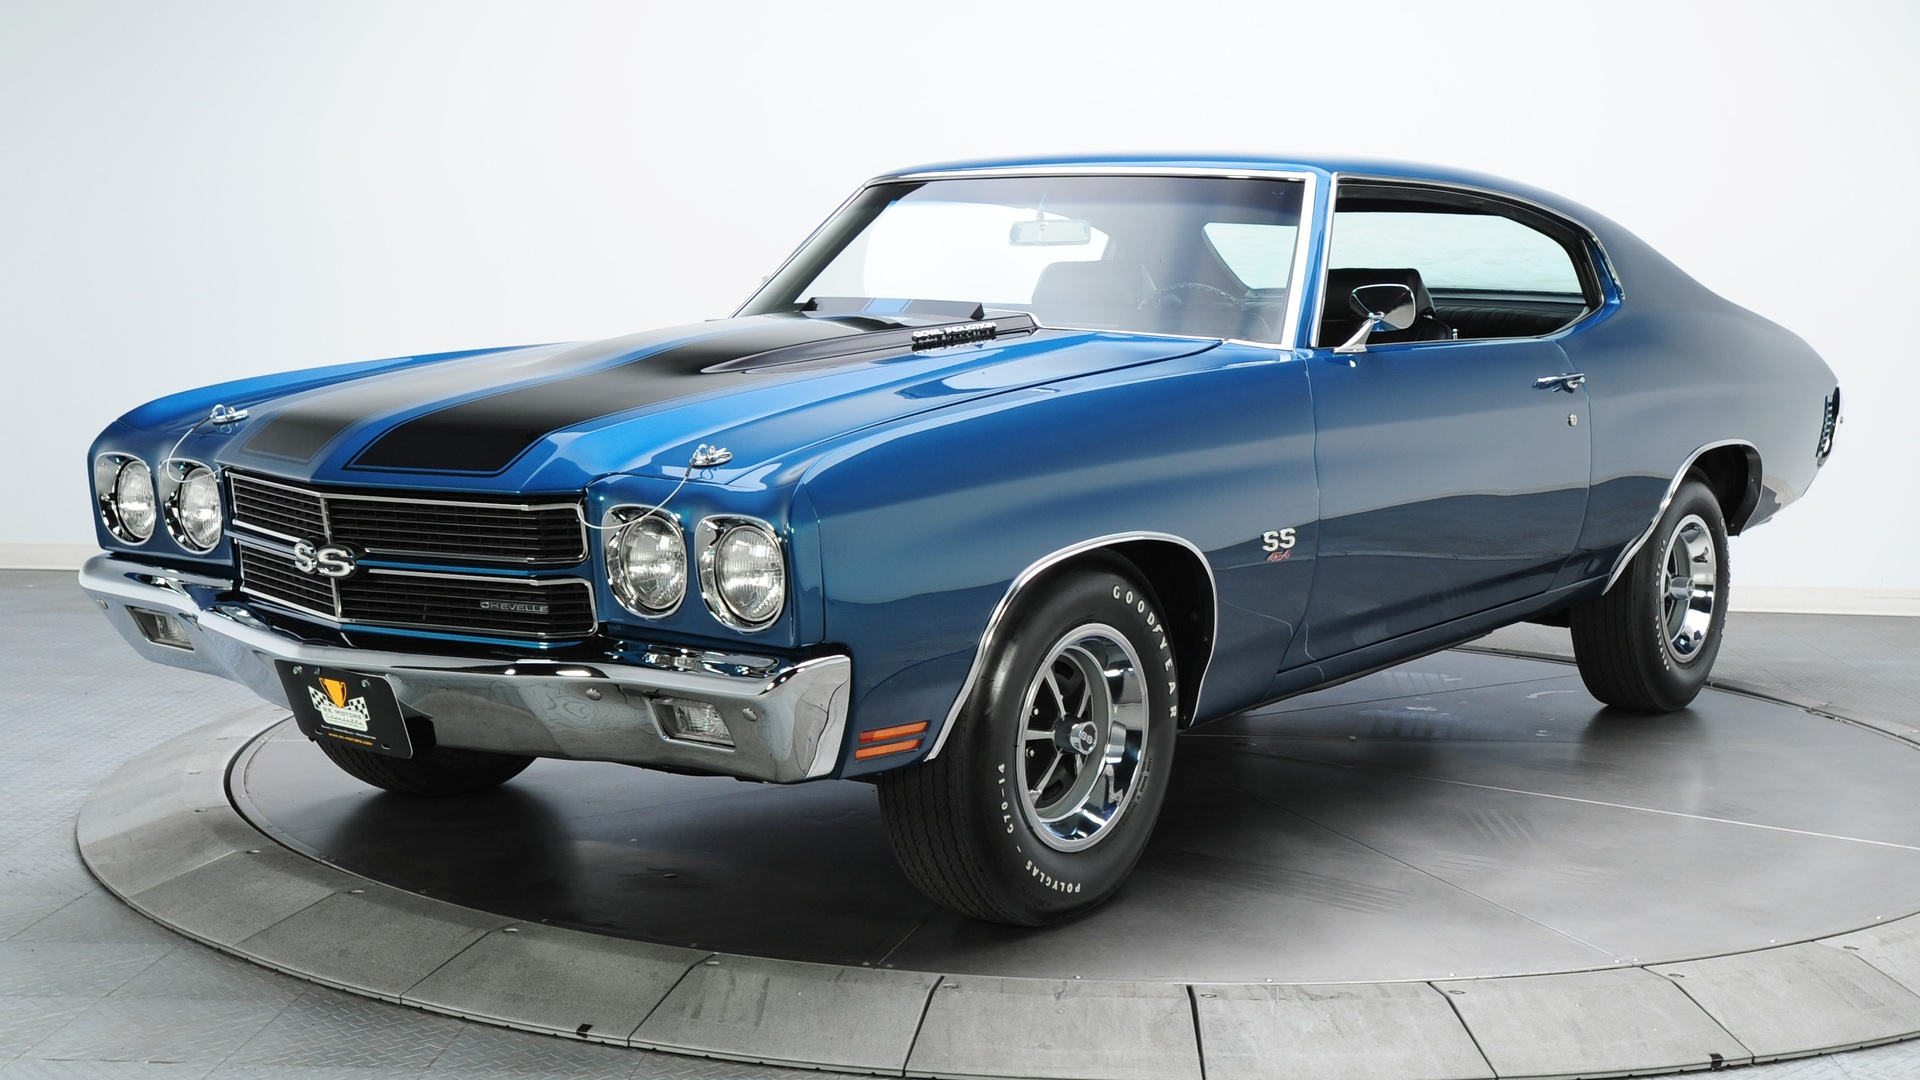 Chevy 2013 Chevrolet Chevelle Ss Wiring Diagrams 1968 Monte Carlo 1970 For The Crew Forums Rh Ubi Com Pk